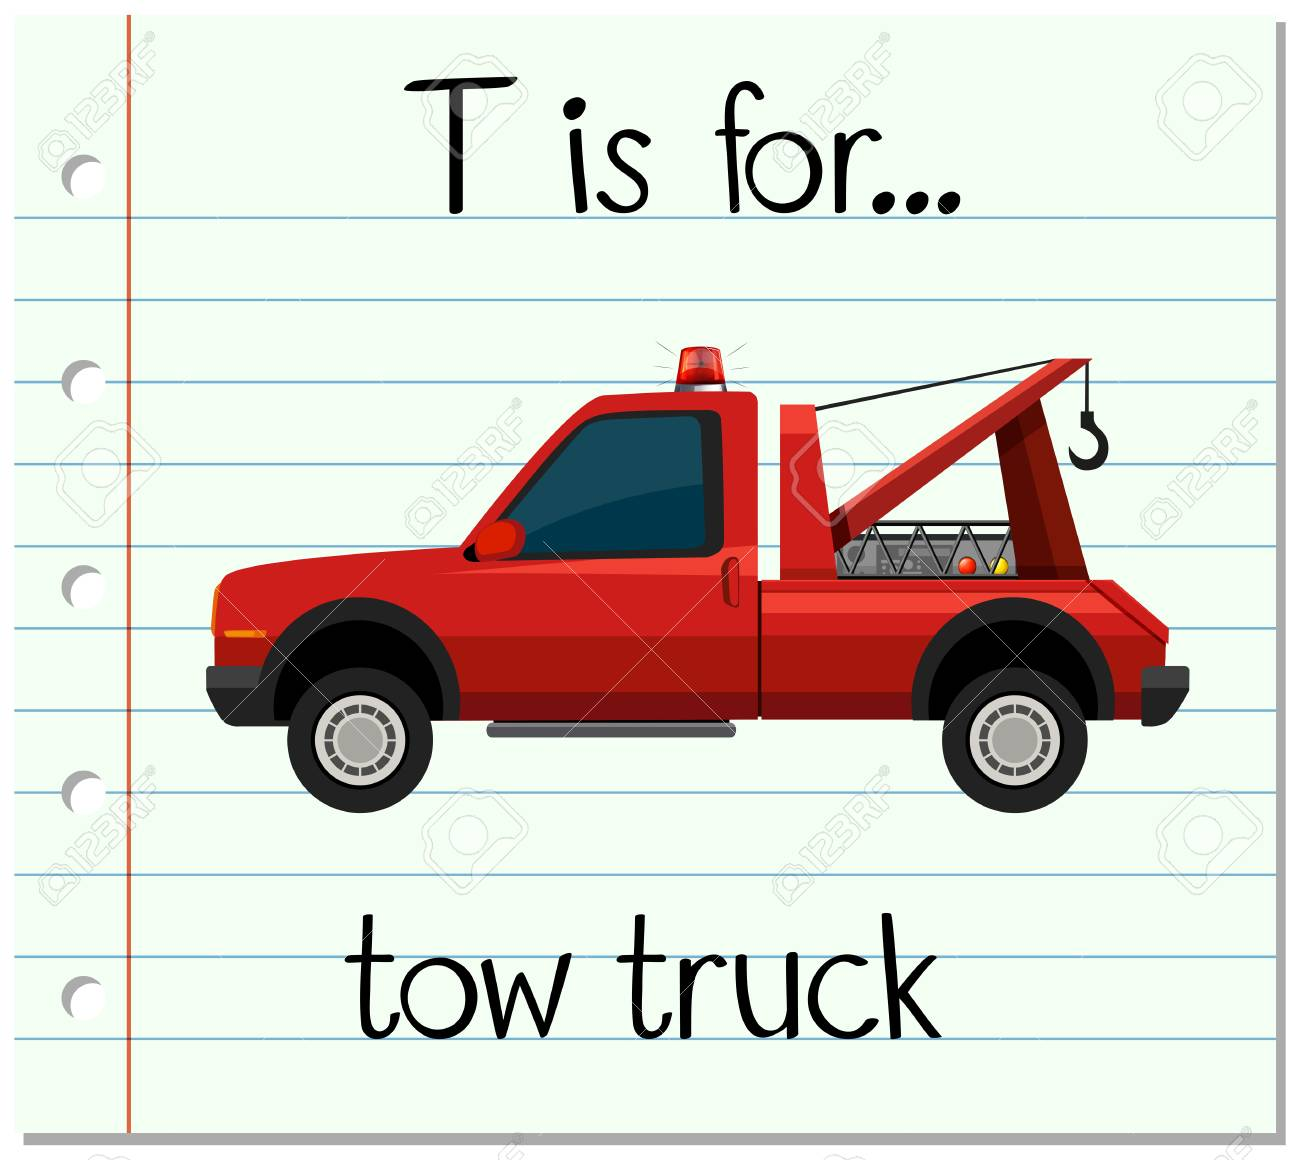 flashcard letter t is for tow truck illustration royalty free rh 123rf com free tow truck graphics tow truck graphic design